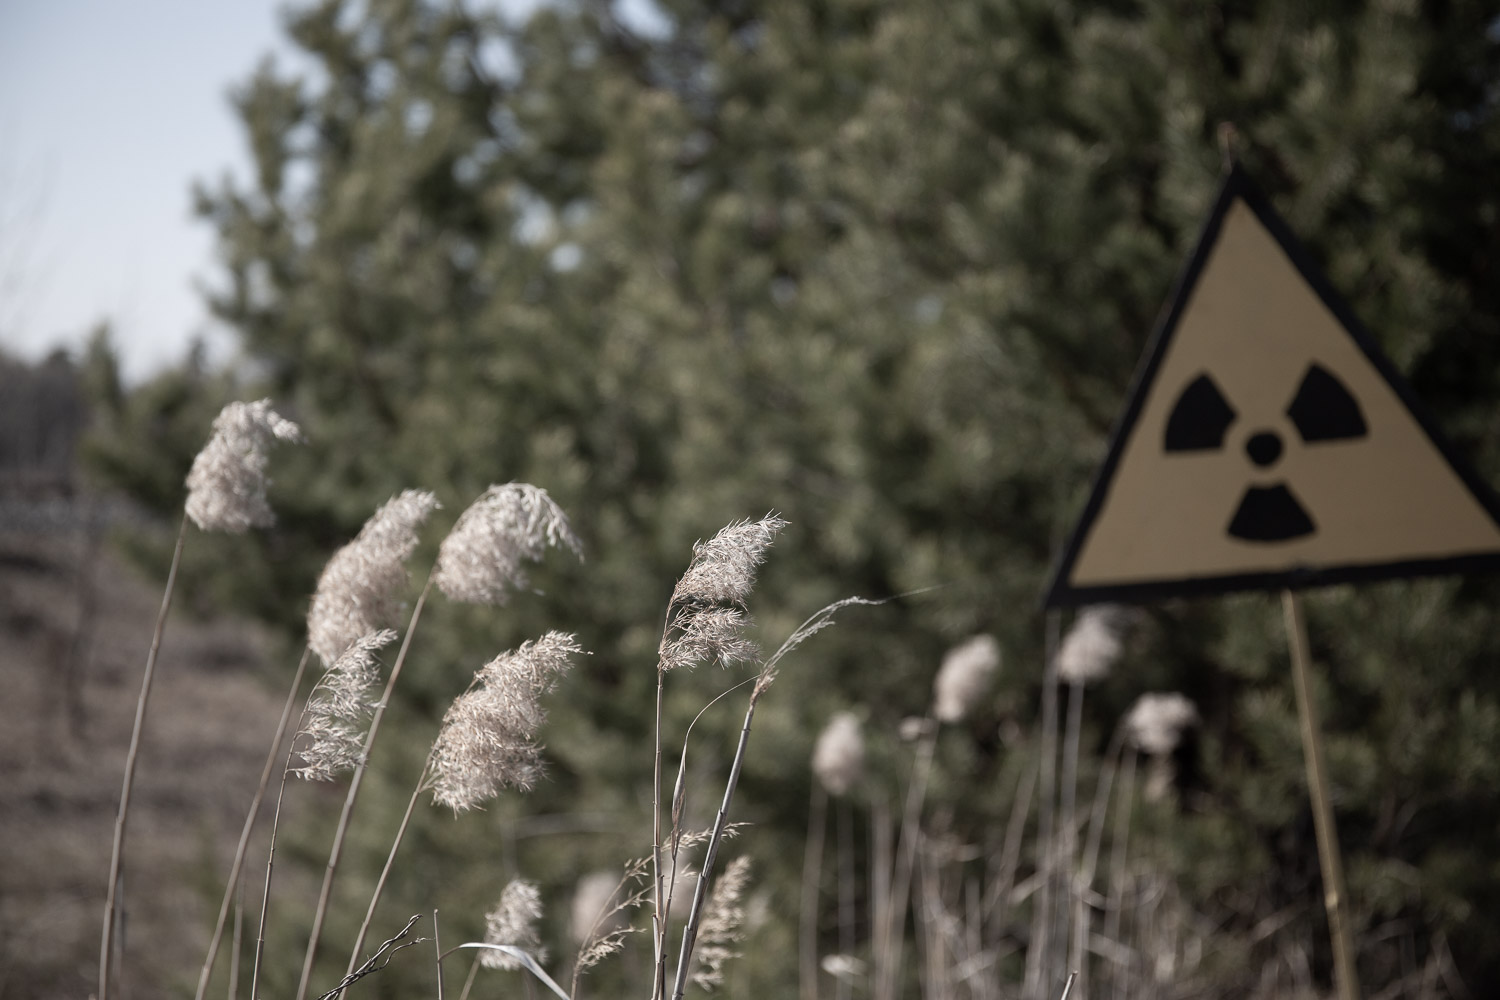 Radiation sign in the Chernobyl Exclusion Zone